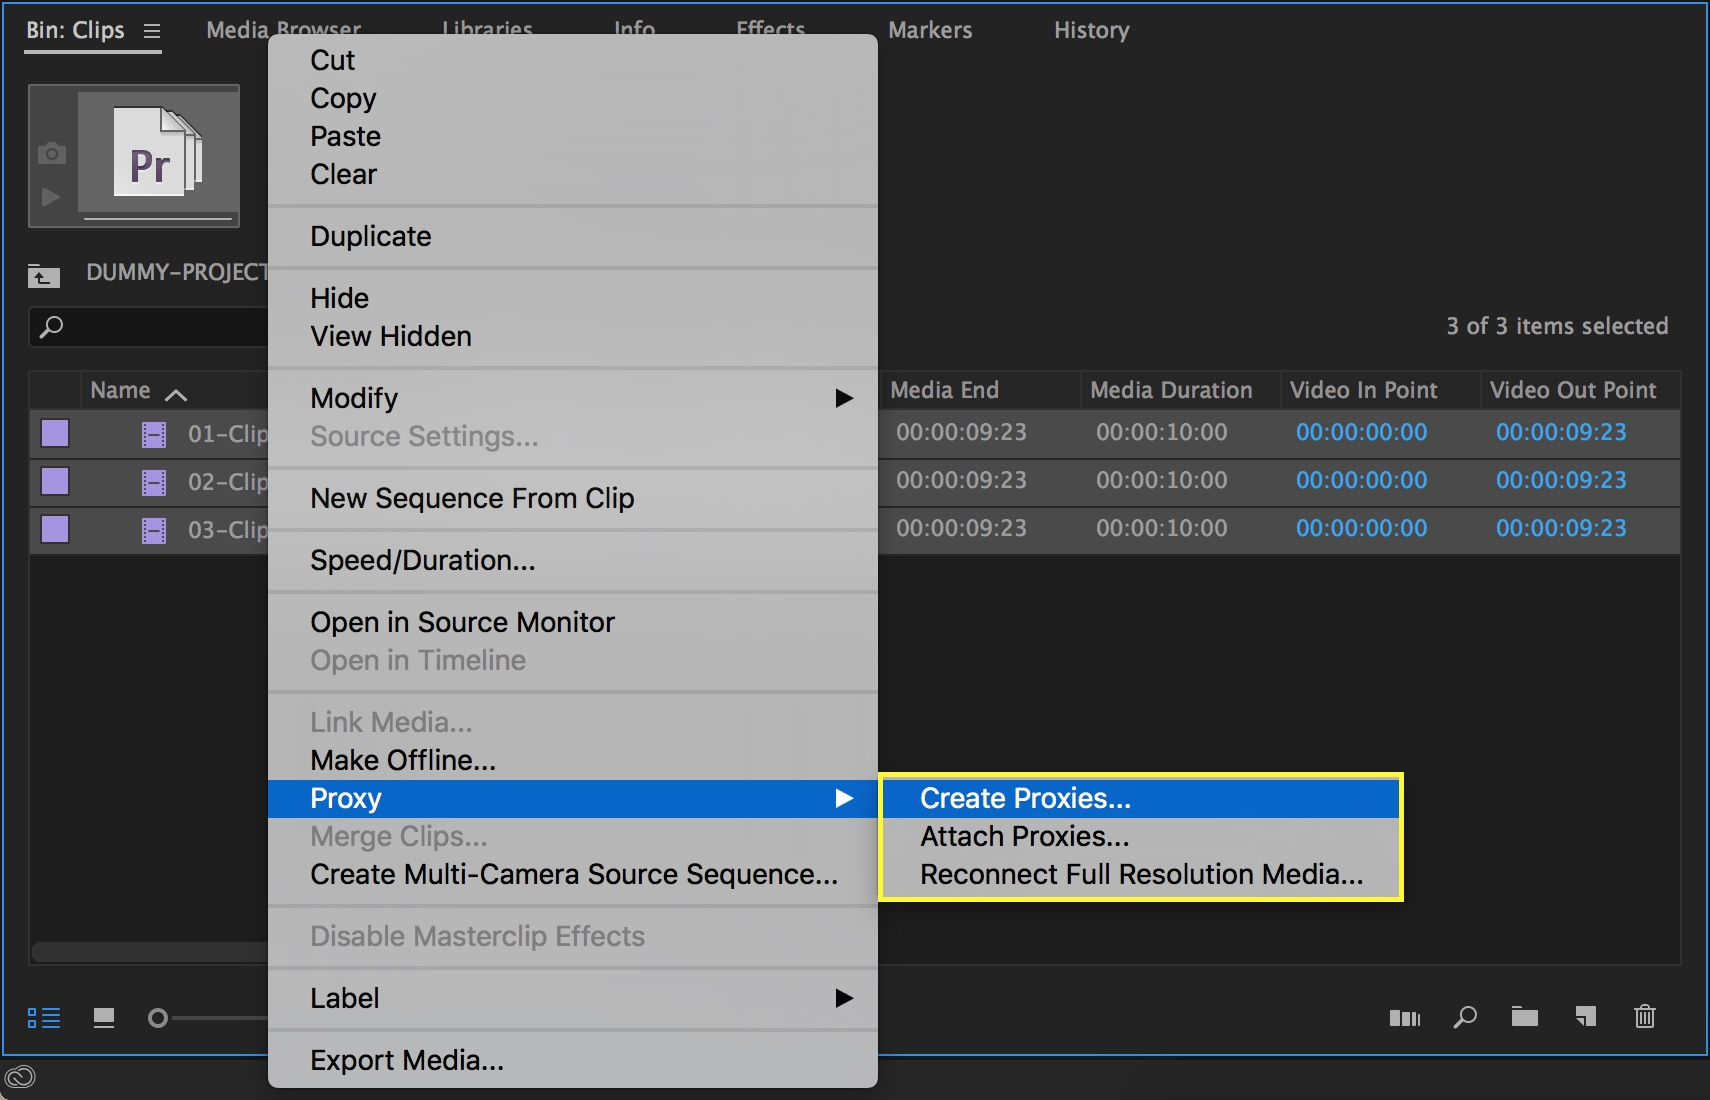 Proxy workflows result in smoother playback